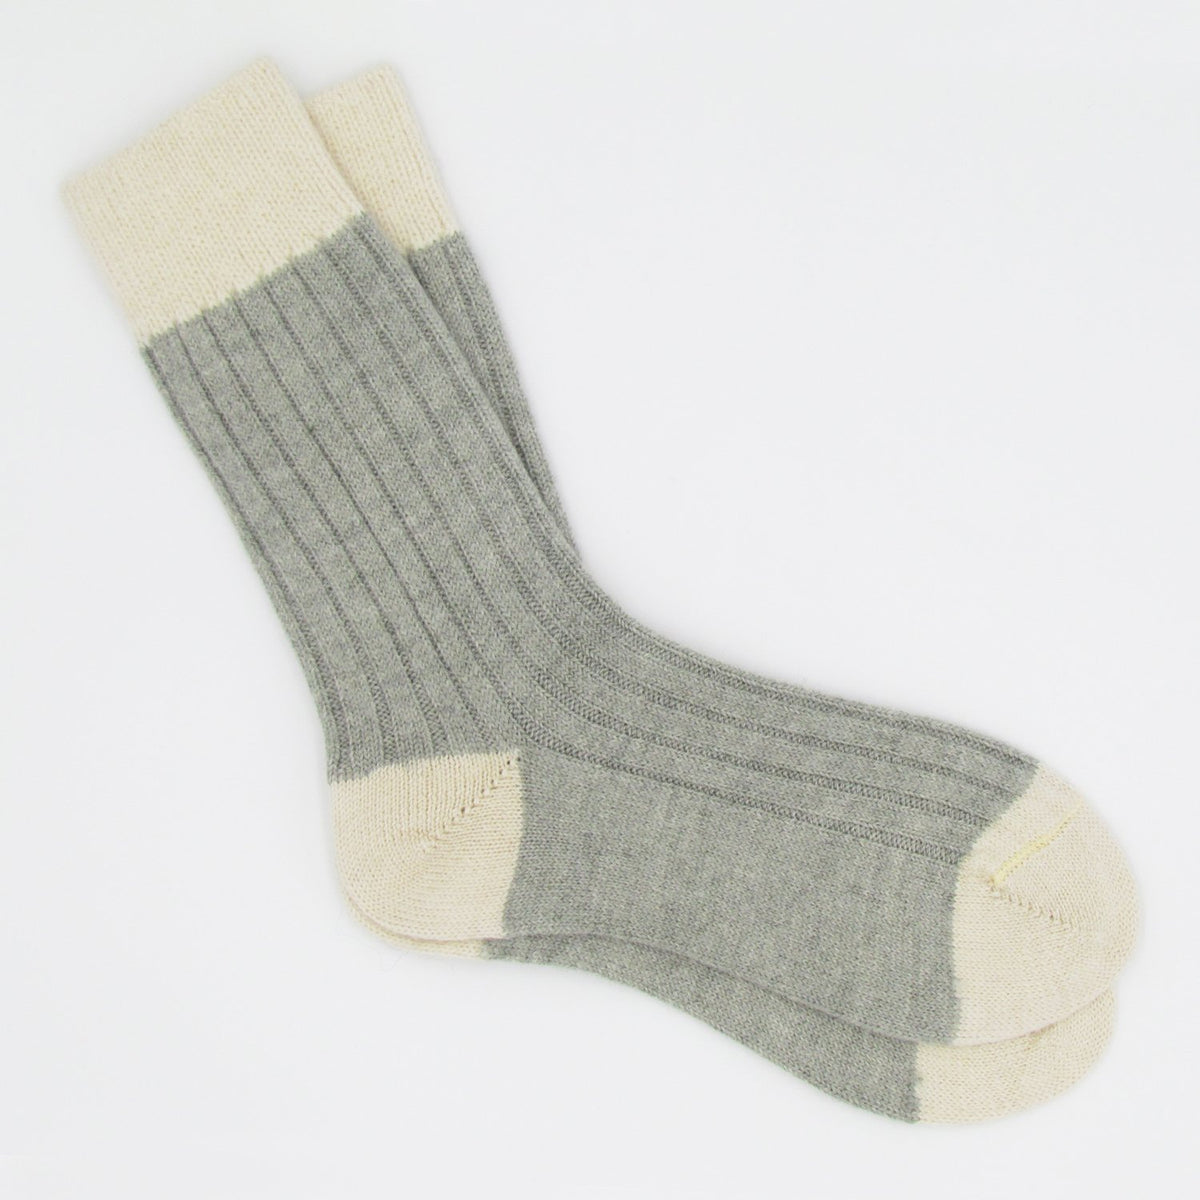 Pair of Alpaca Bed Socks - Gooseberry